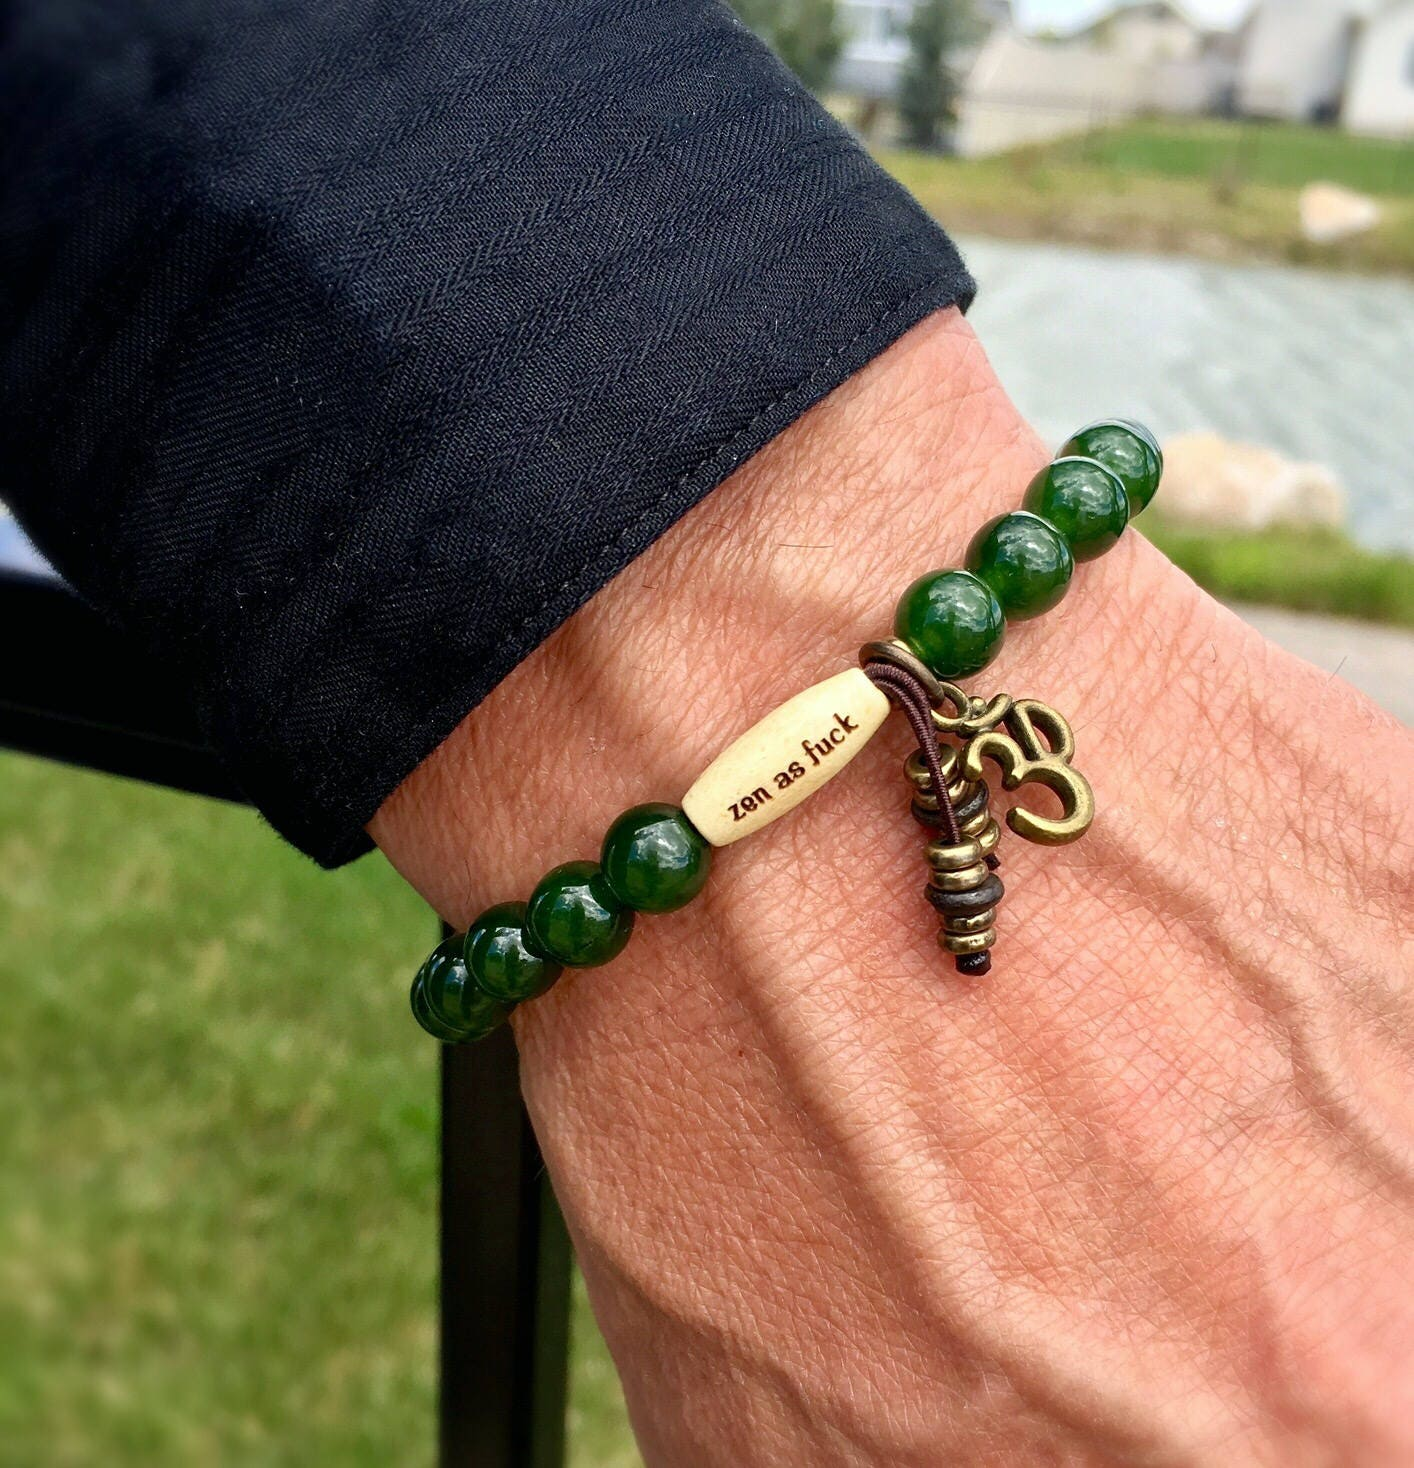 f listing fullxfull il zen yoga gemstones mens jade as grade jewelry fck high om bracelet wrist ck success mala beads meditation wealth